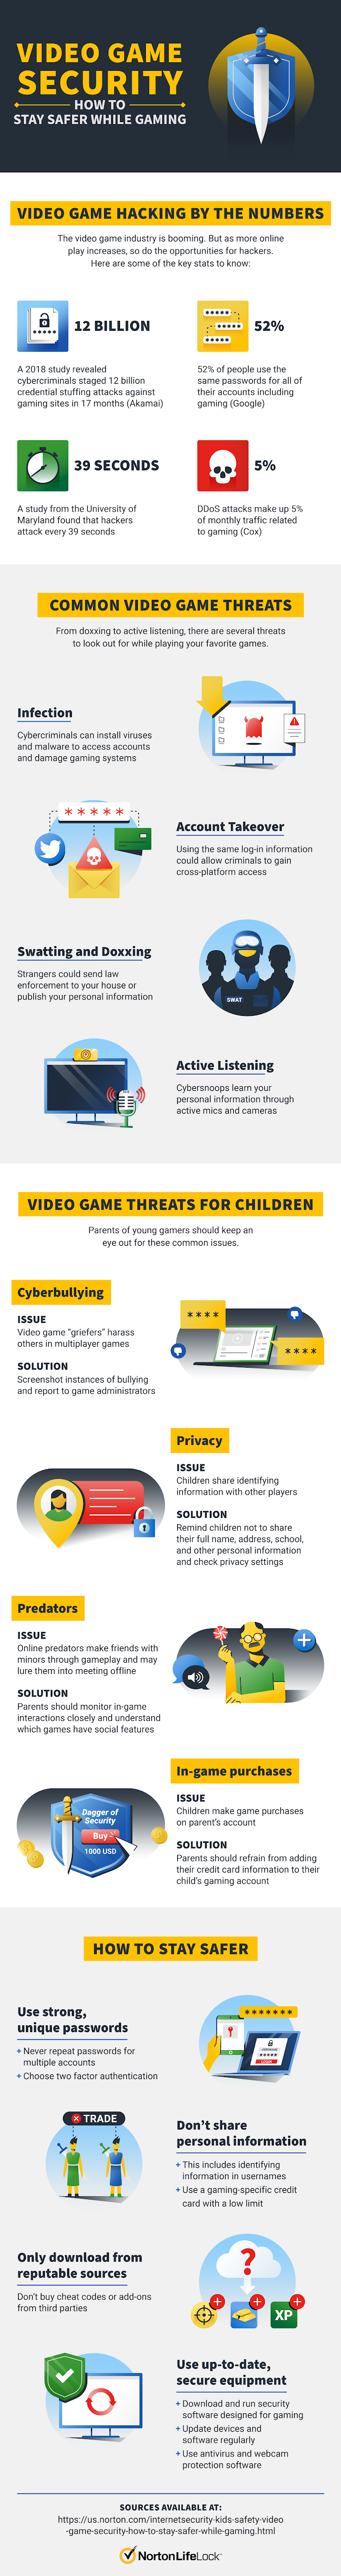 Video game security: How to stay safer while gaming #infographic #Entertainment Industry #infographics #Game Security